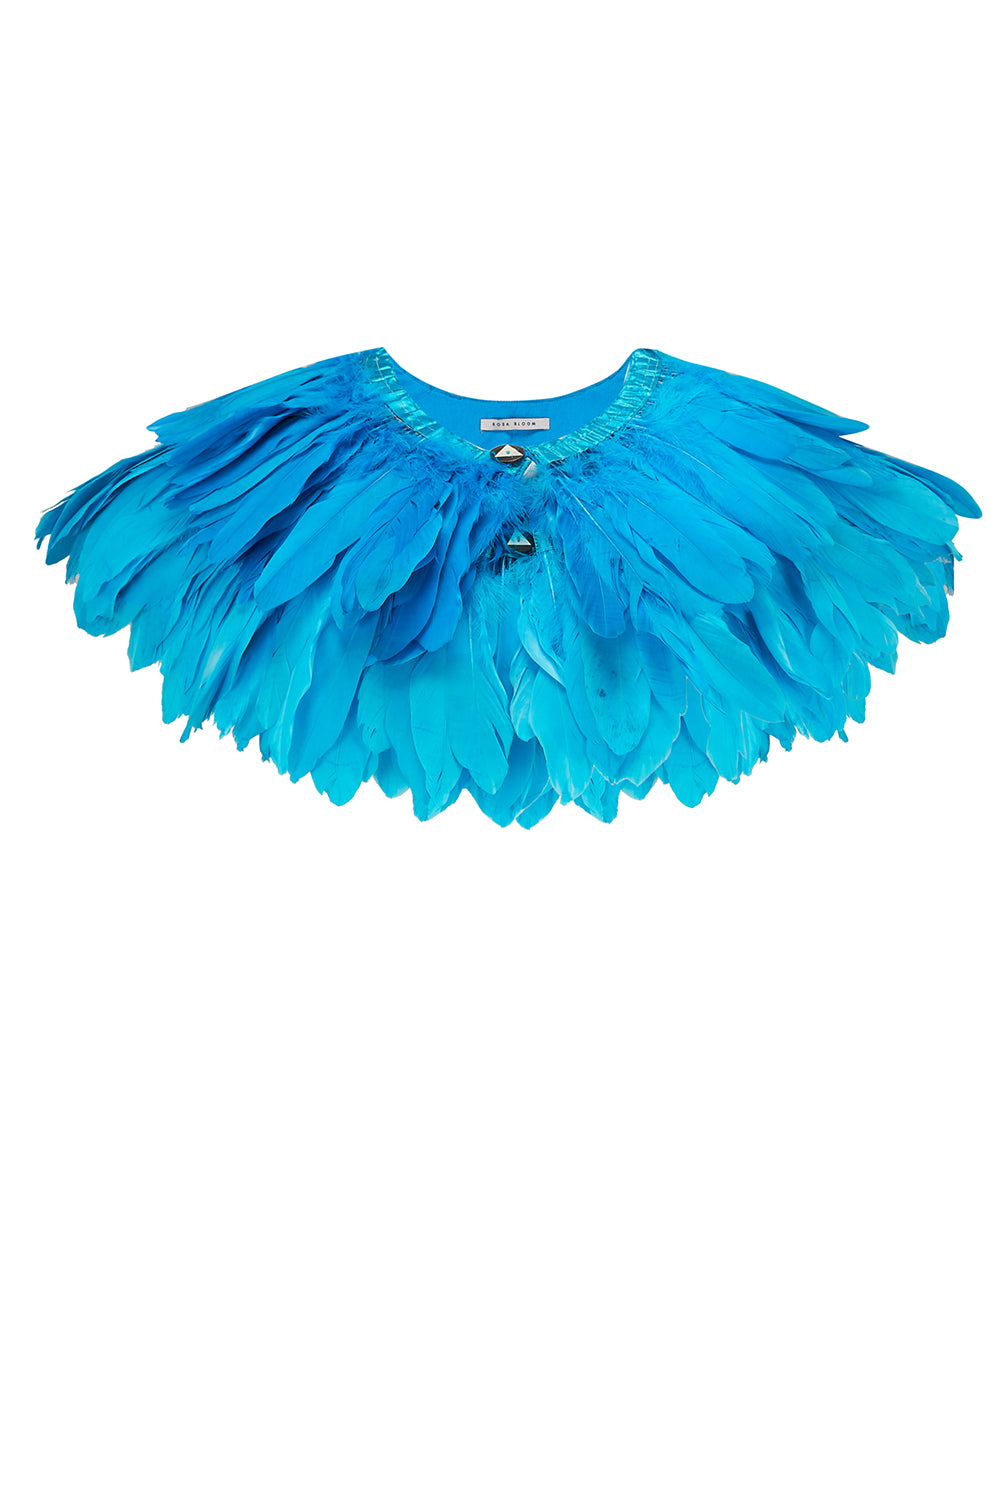 FIREBIRD FEATHER CAPE - TURQUOISE